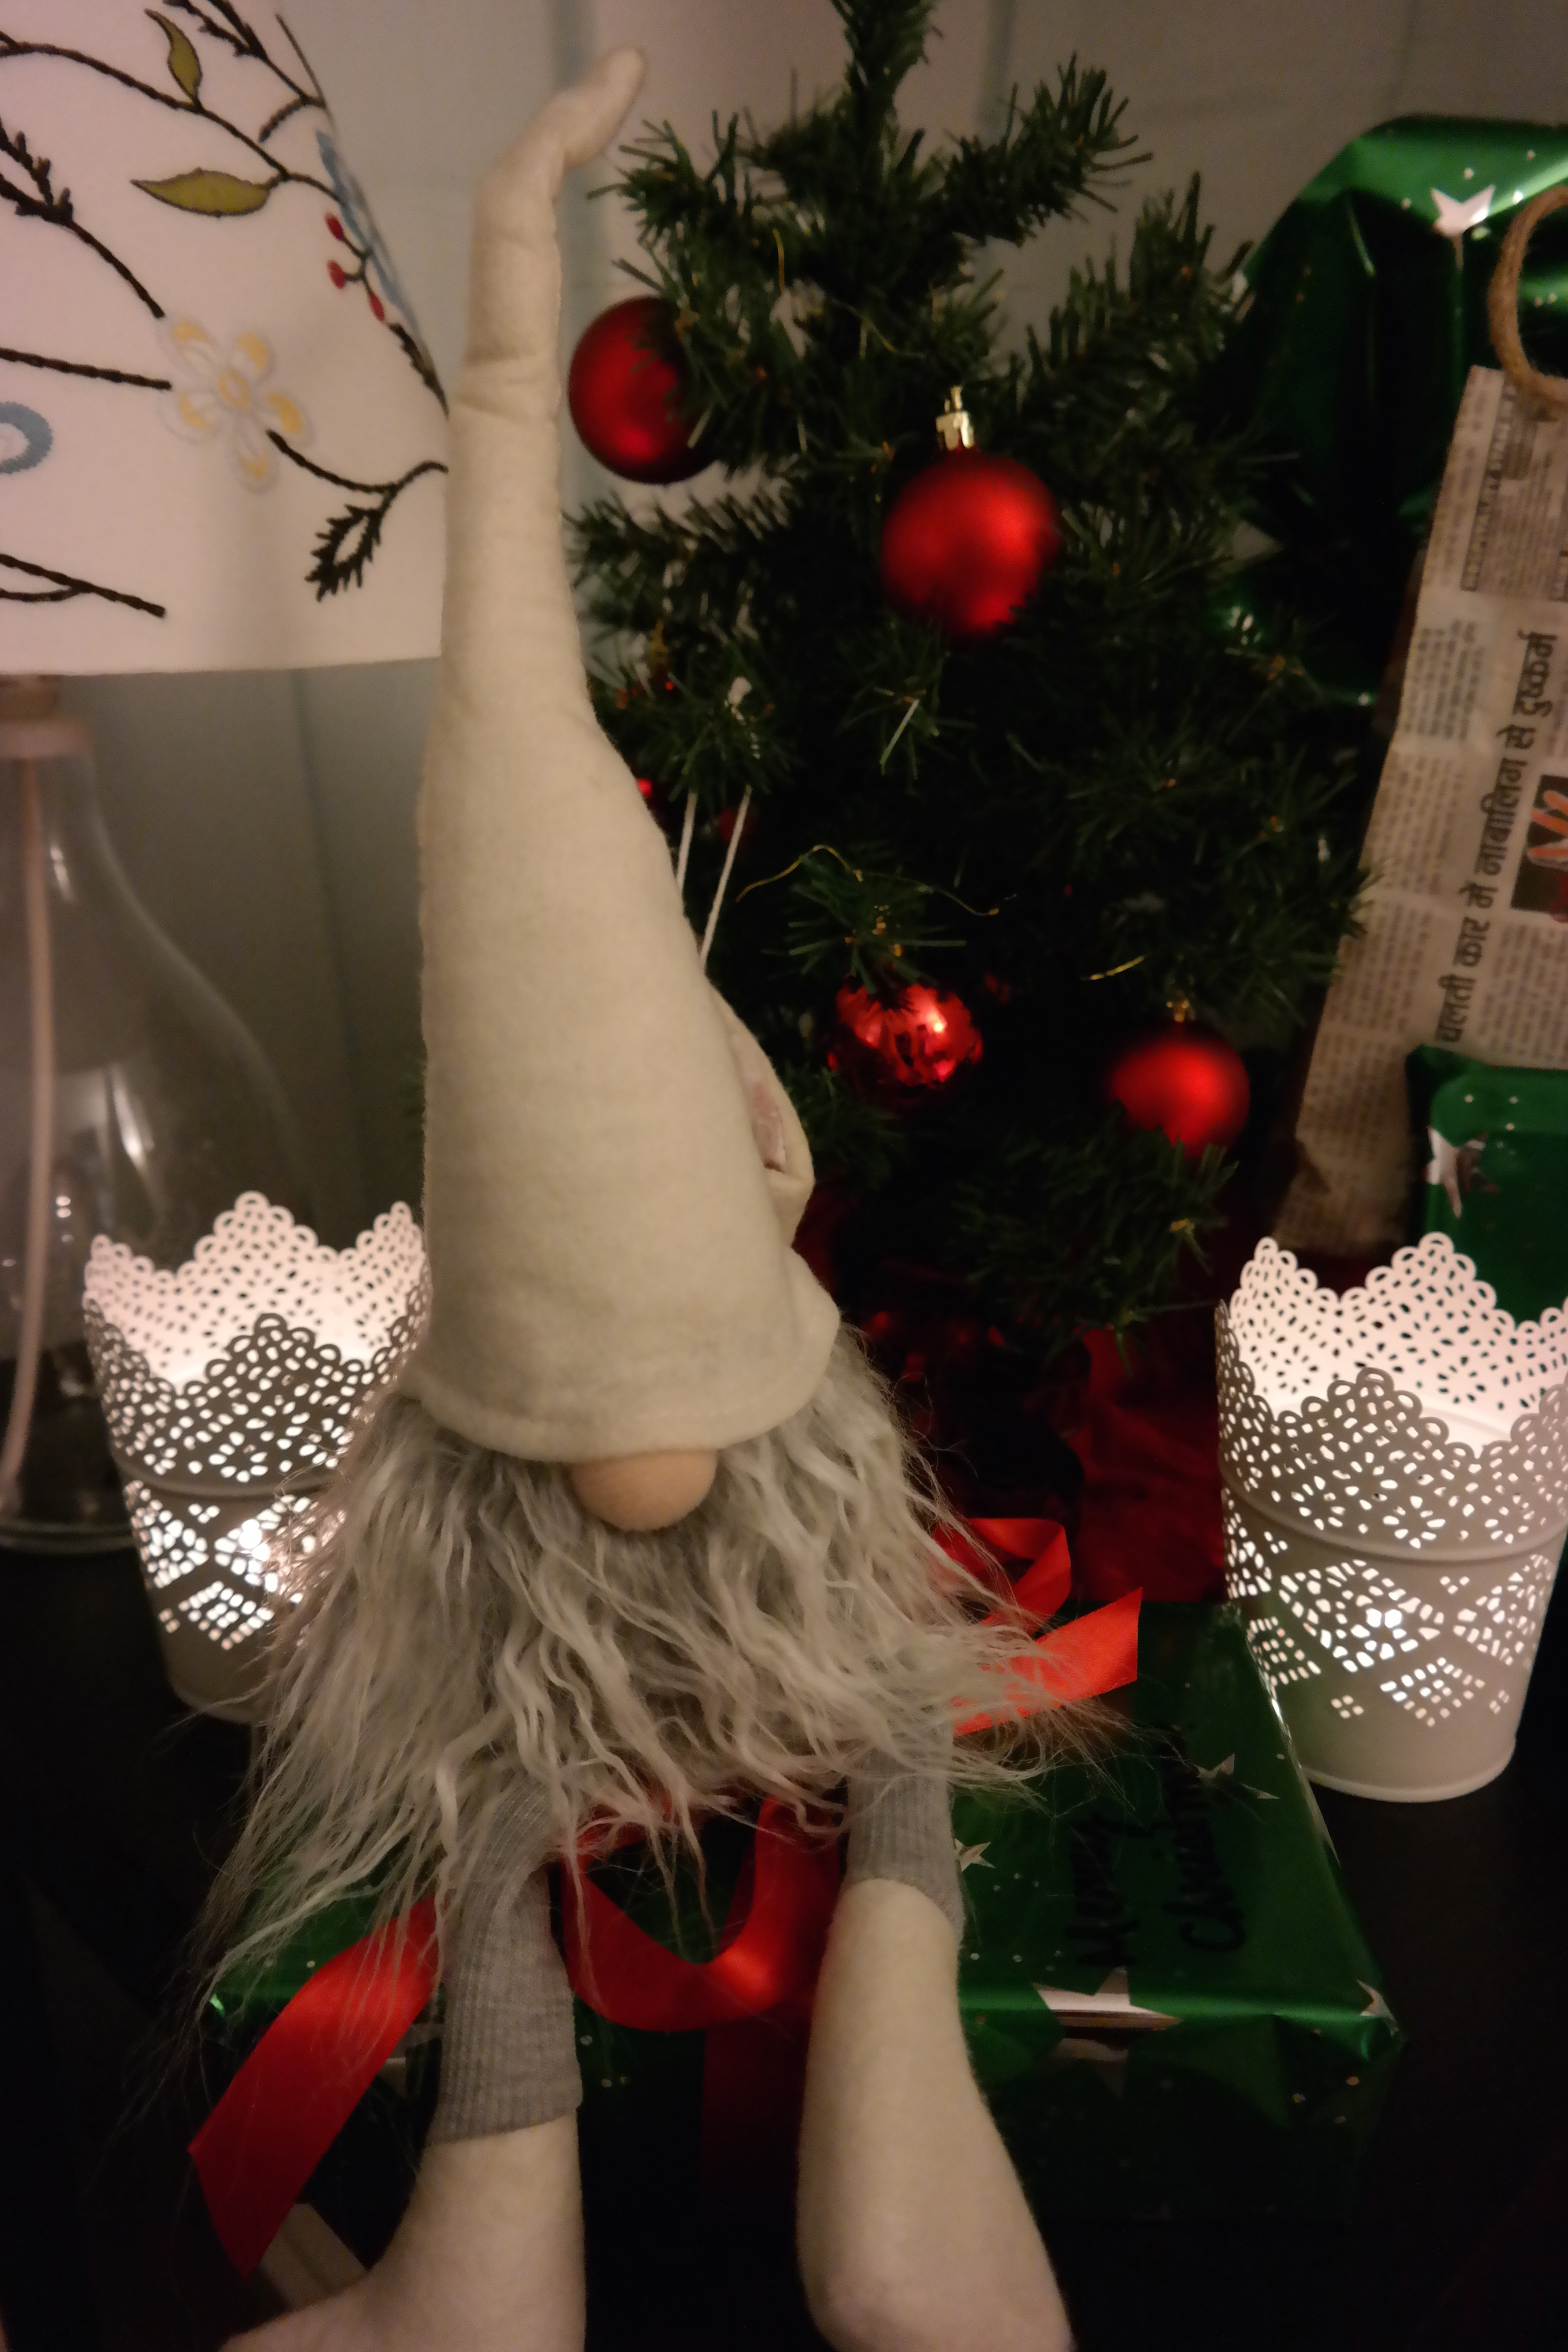 Our shelf-elf Otto presides over the gifting station. And yes, he's about the same size as our tree.